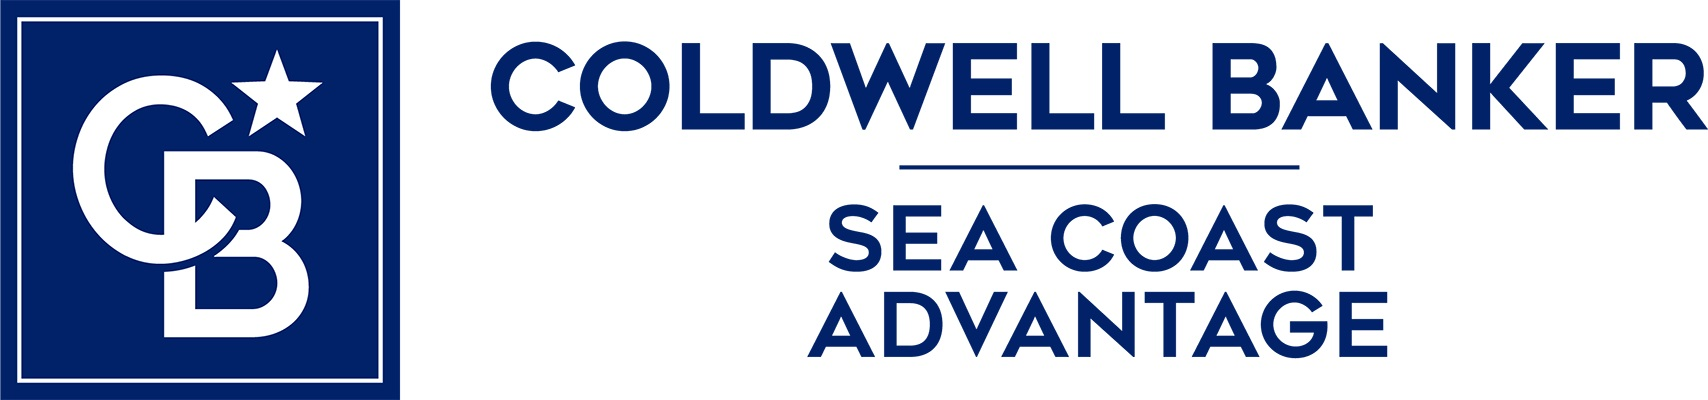 Brian Donohue - Coldwell Banker Sea Coast Advantage Realty